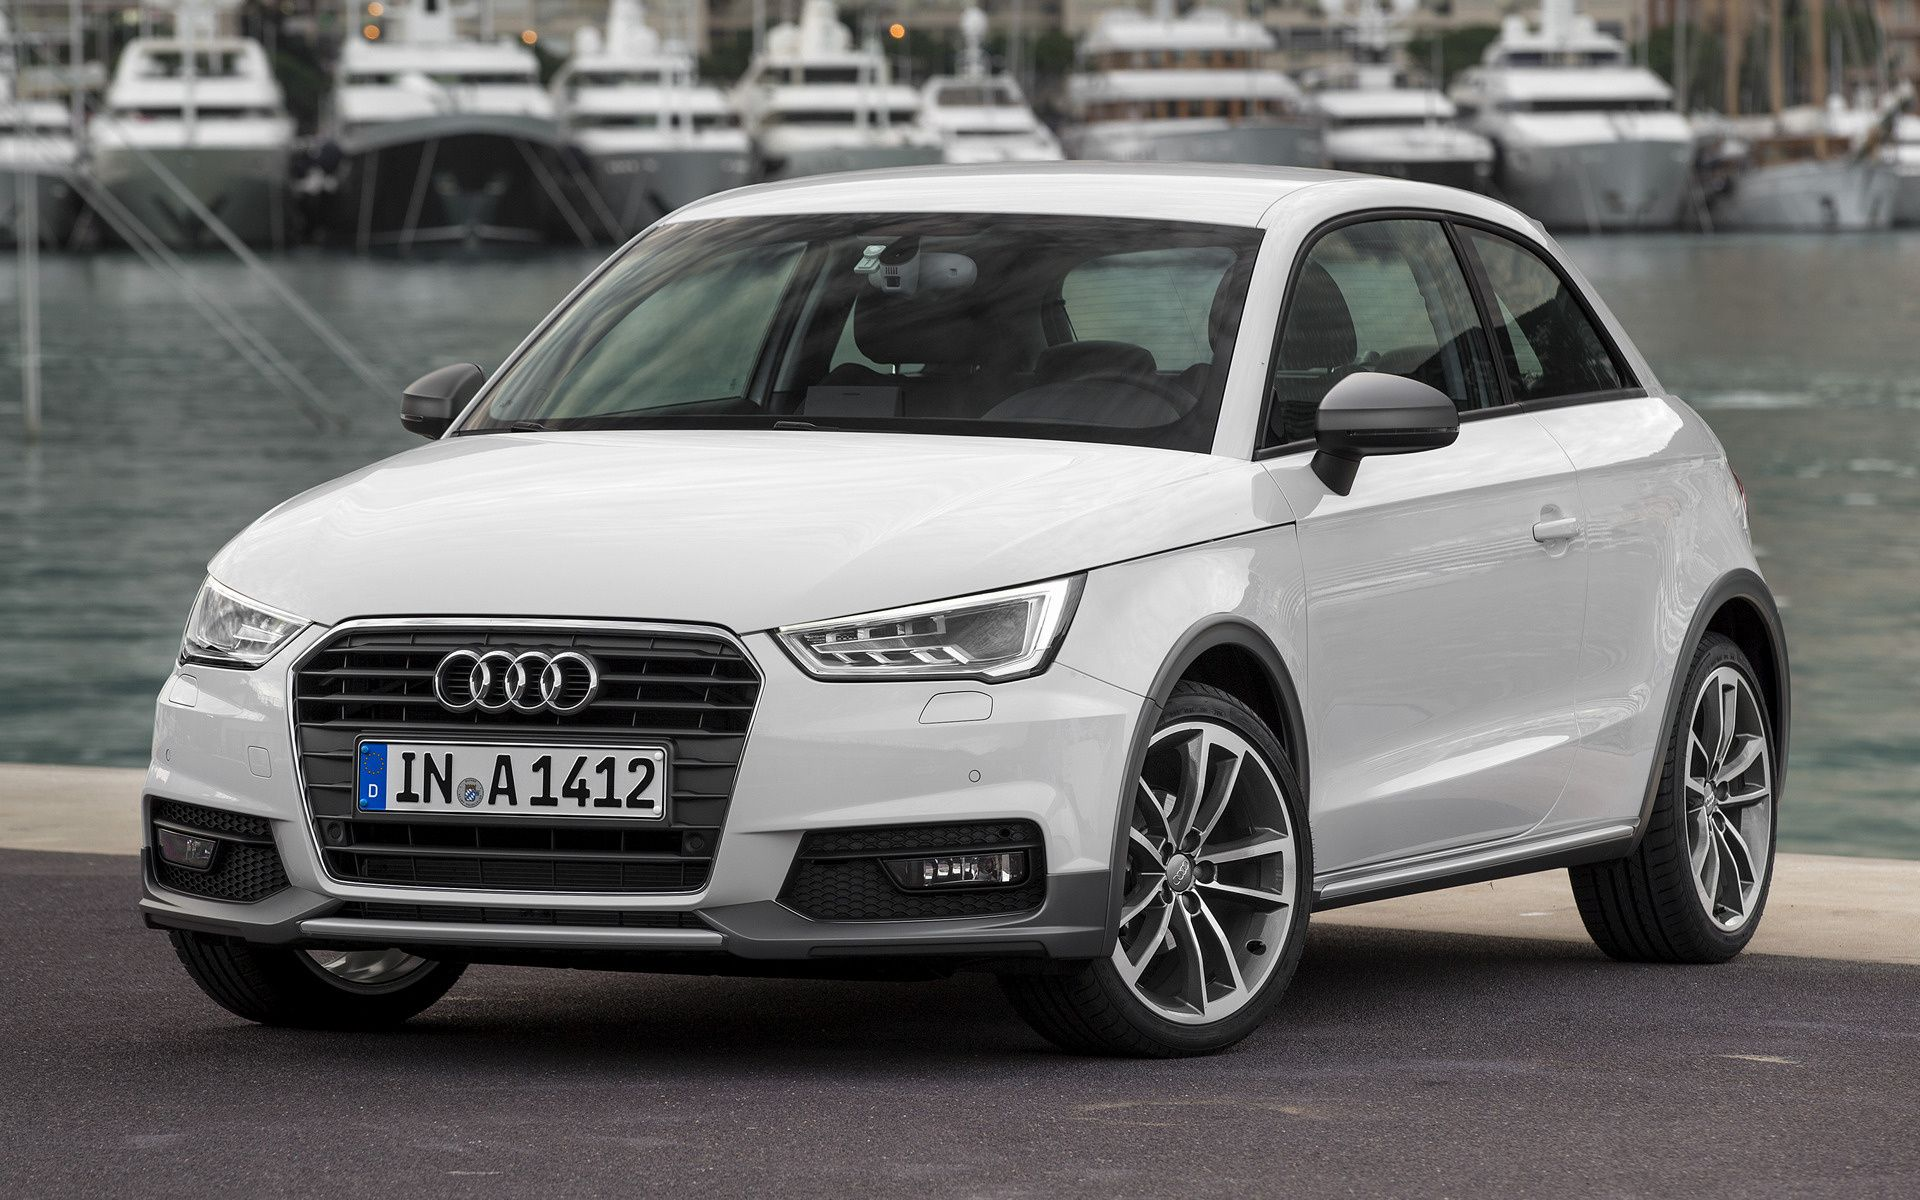 White Audi A Wallpaper Wallpaperplay Audi A1 Audi Car